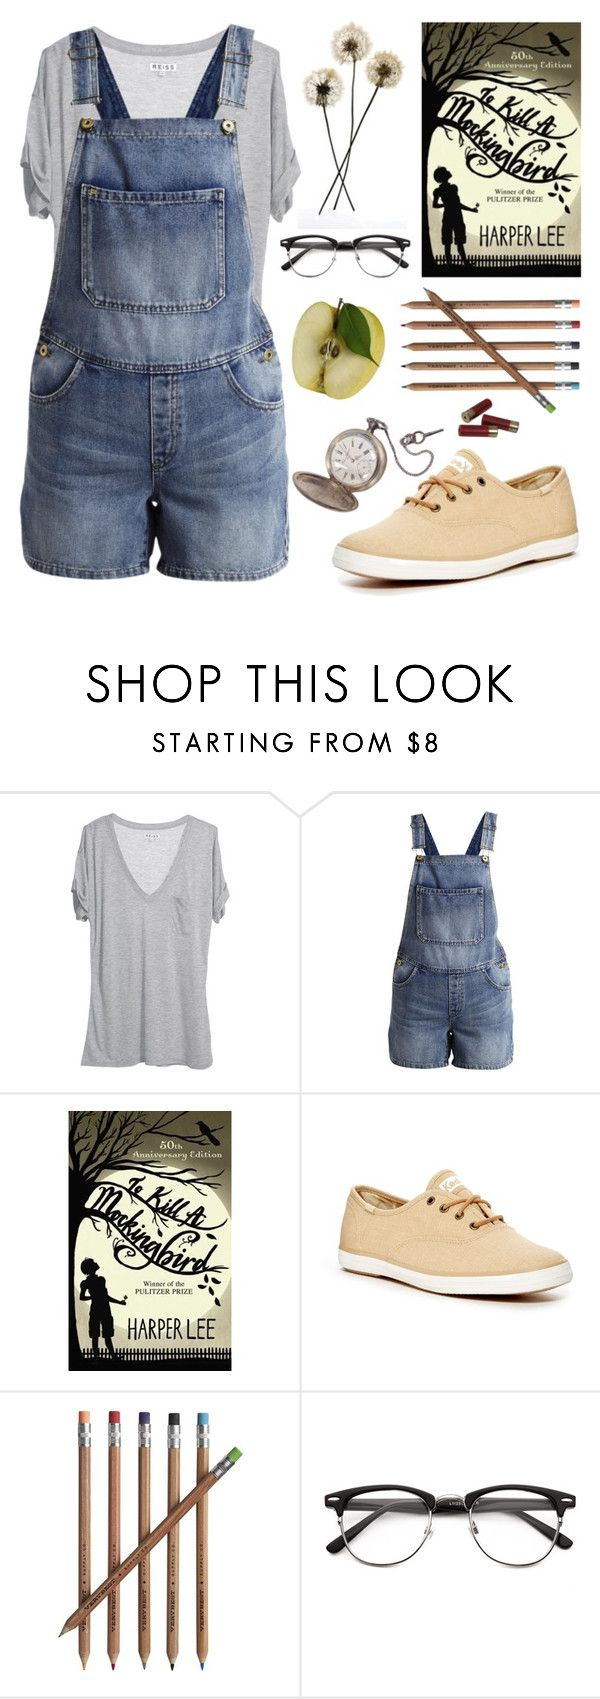 """""""«The one thing that doesn't abide by majority rule is a person's conscience.»"""" by chezamanda ❤ liked on Polyvore featuring Reiss, VILA, Keds, Crate and Barrel and CO"""